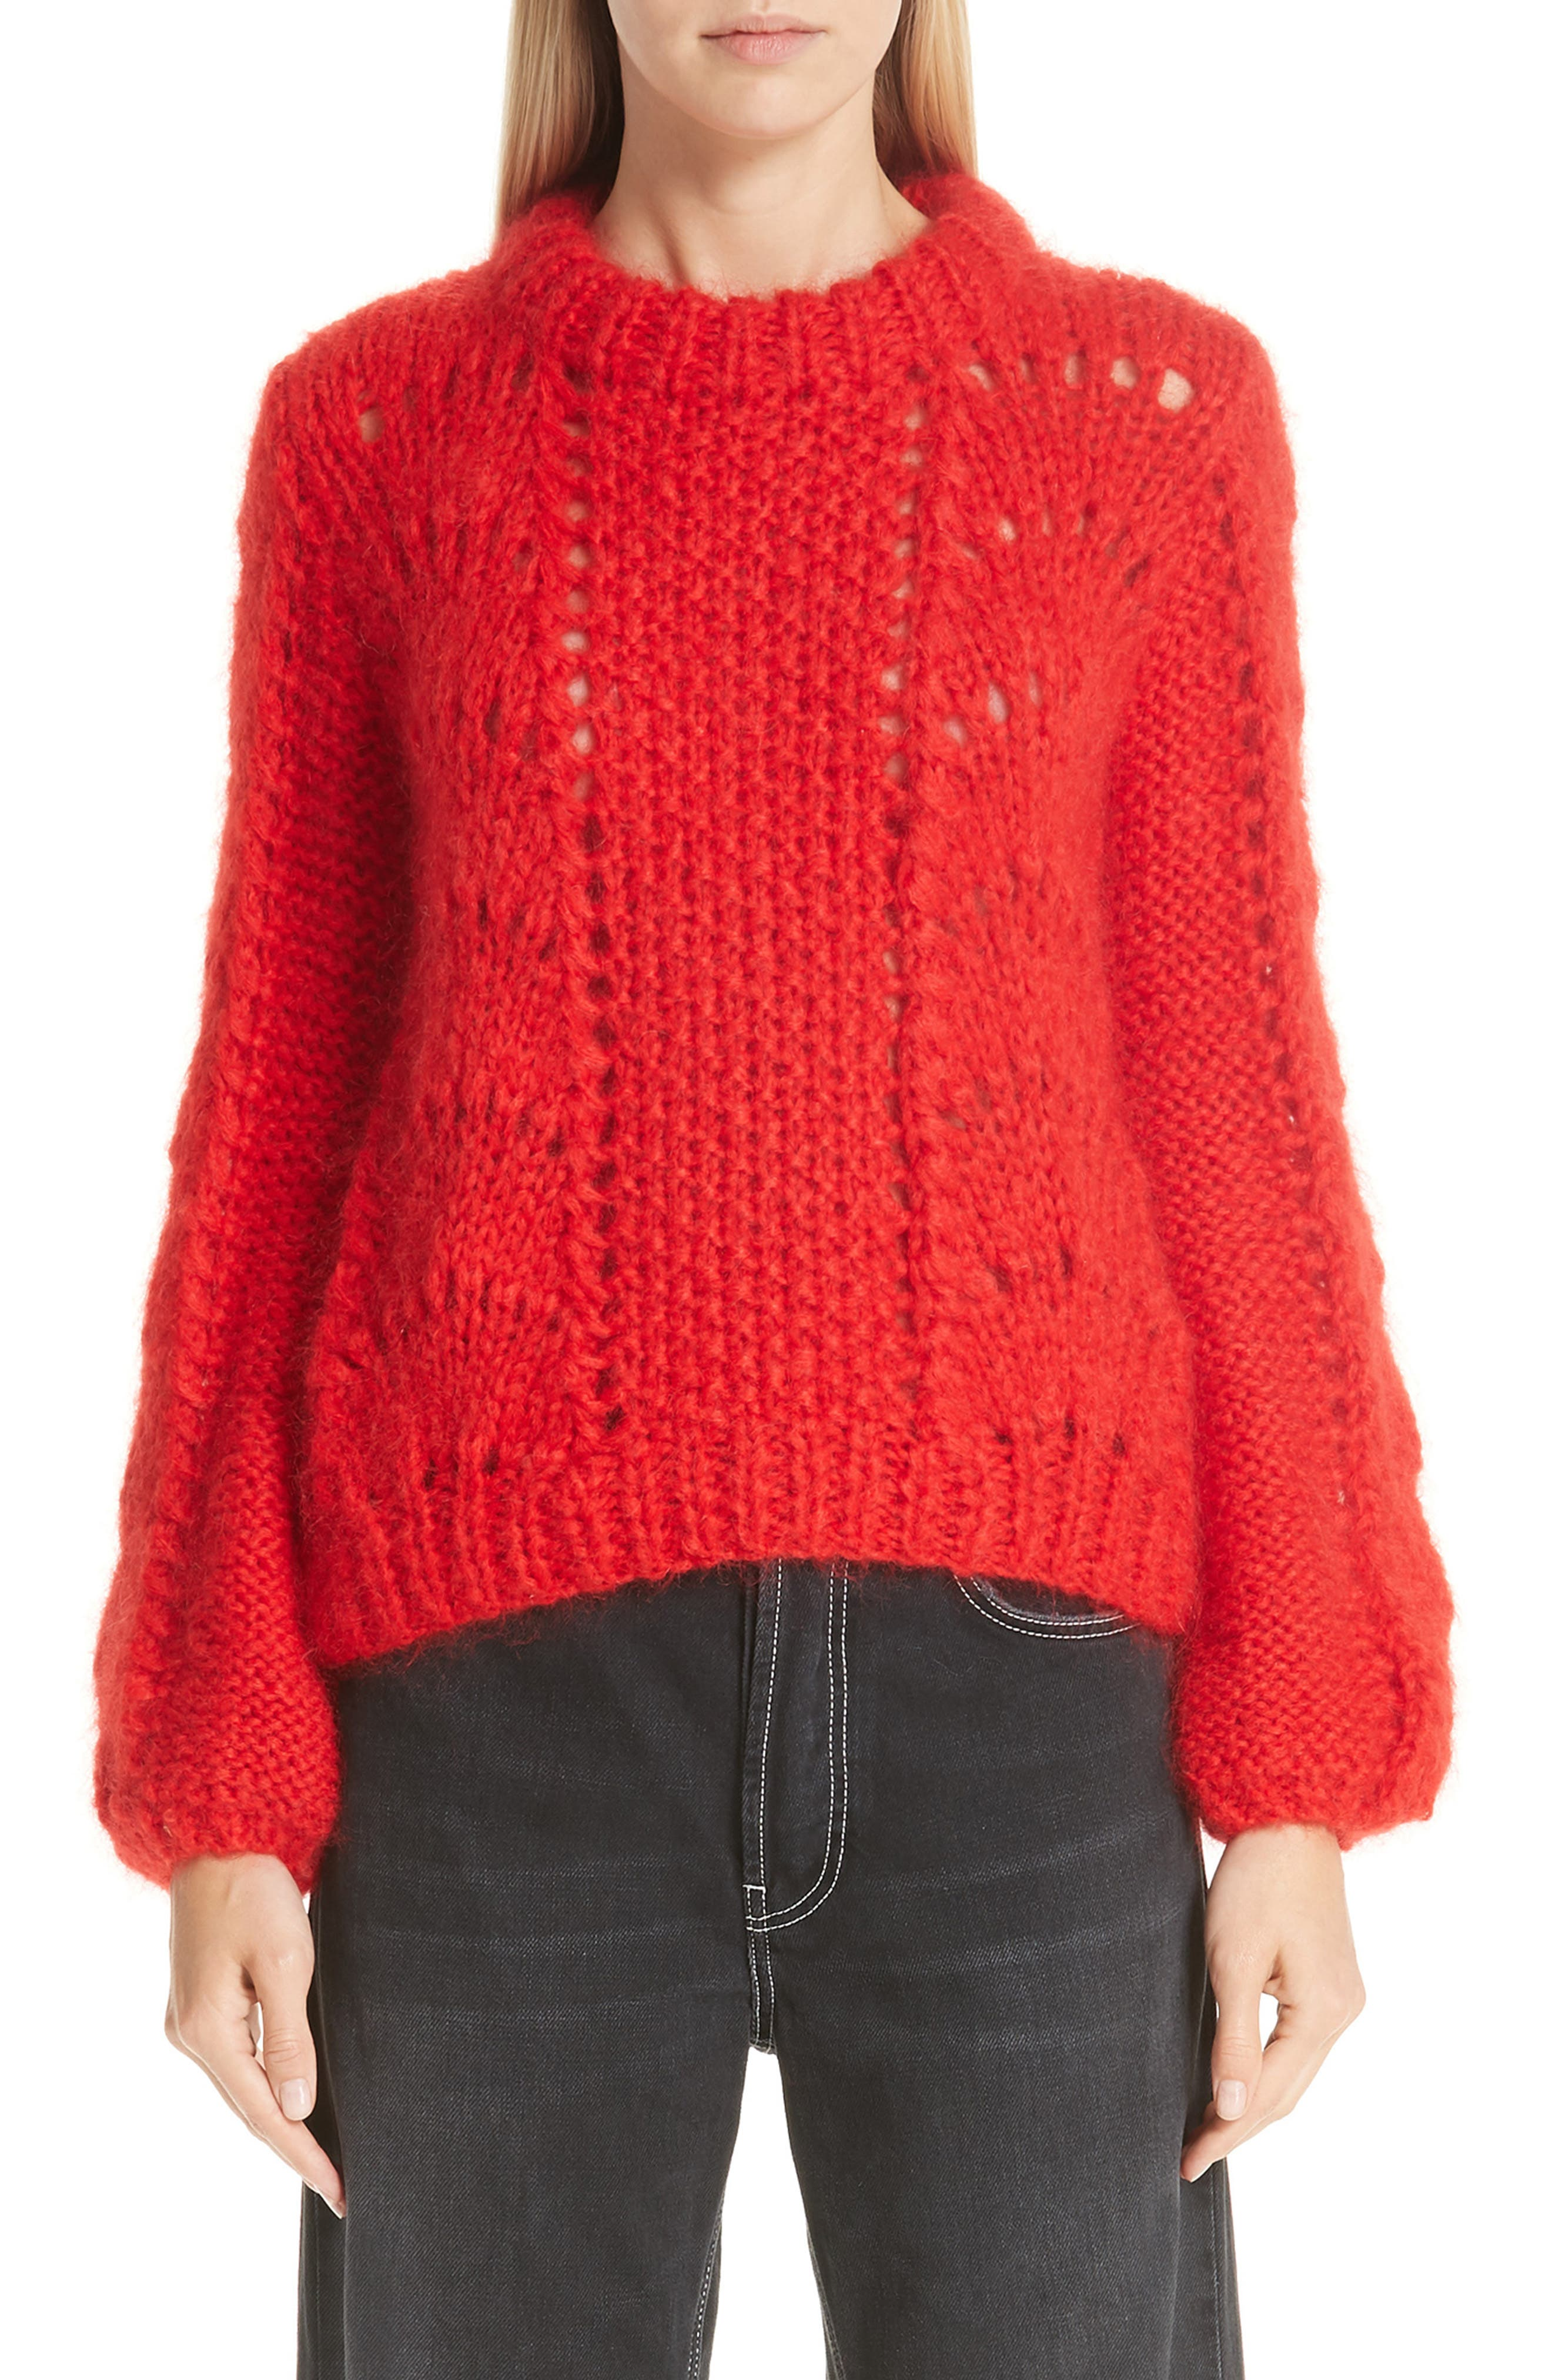 GANNI Mohair & Wool Sweater, Main, color, FIERY RED 403